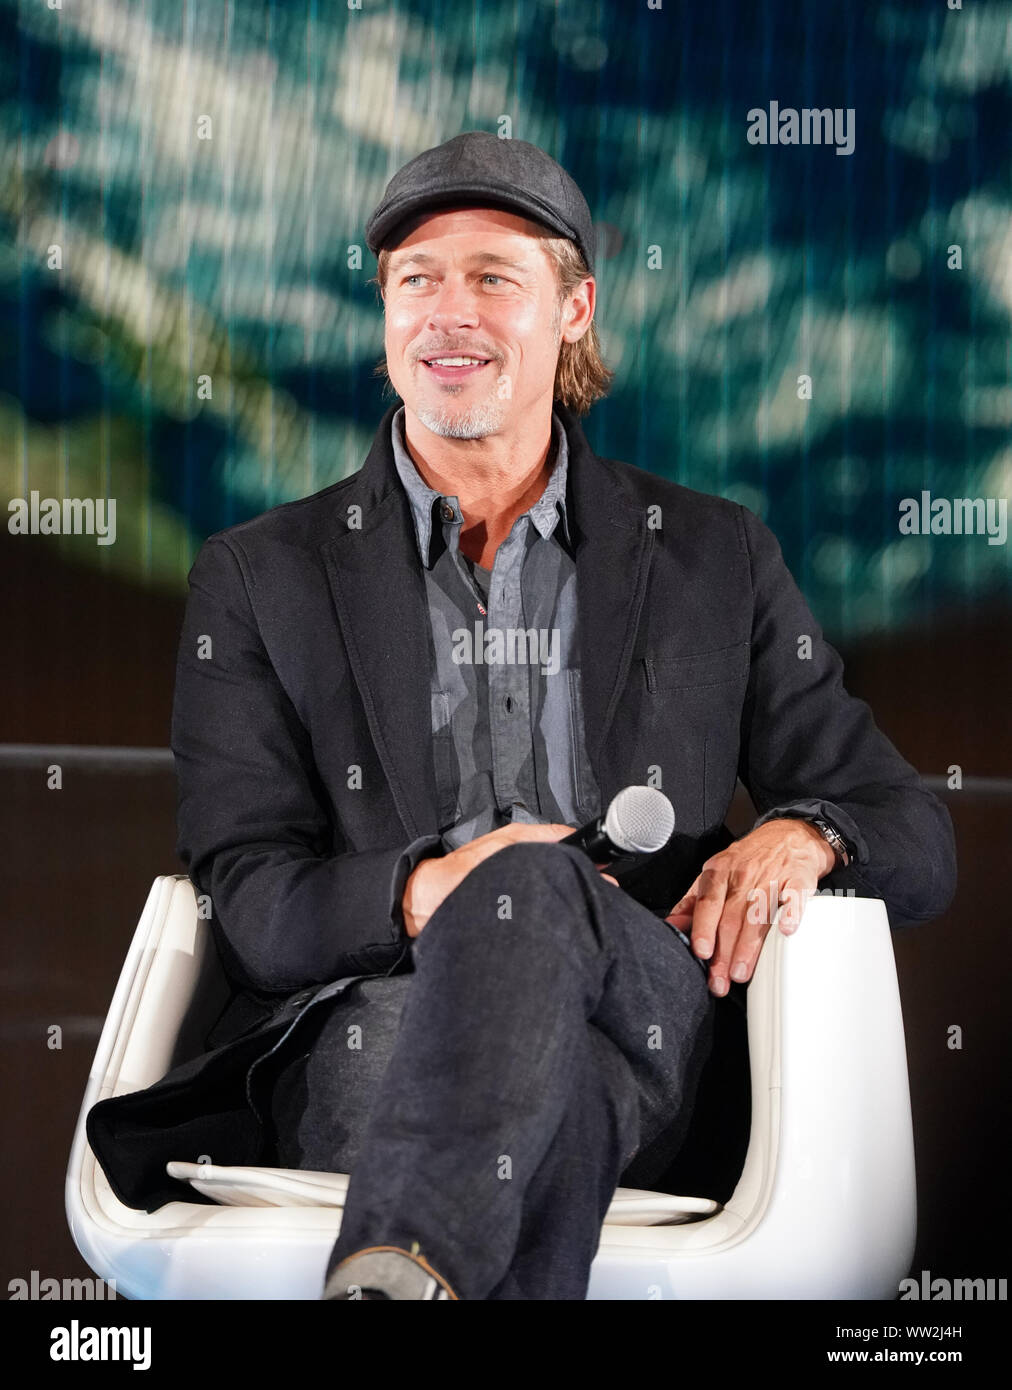 movie 2019 brad pitt Actor Brad Pitt Attends The Press Conference For His Movie